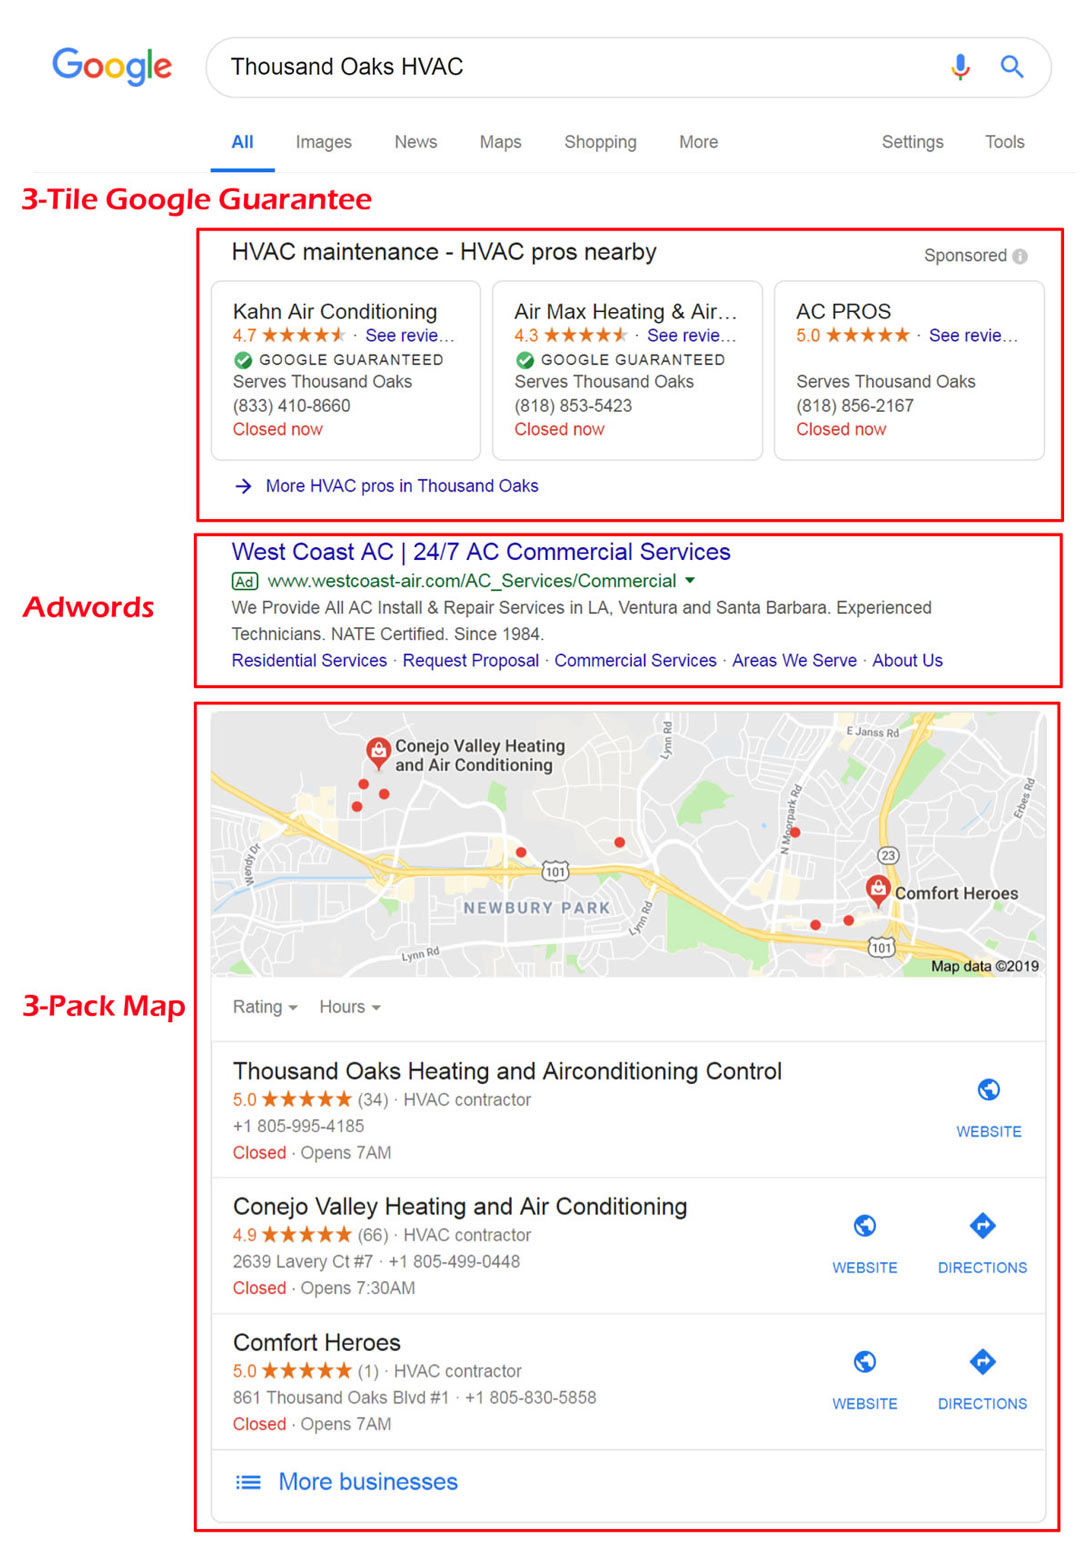 Google Guarantee Local Service Ads to Book Service from Google itself